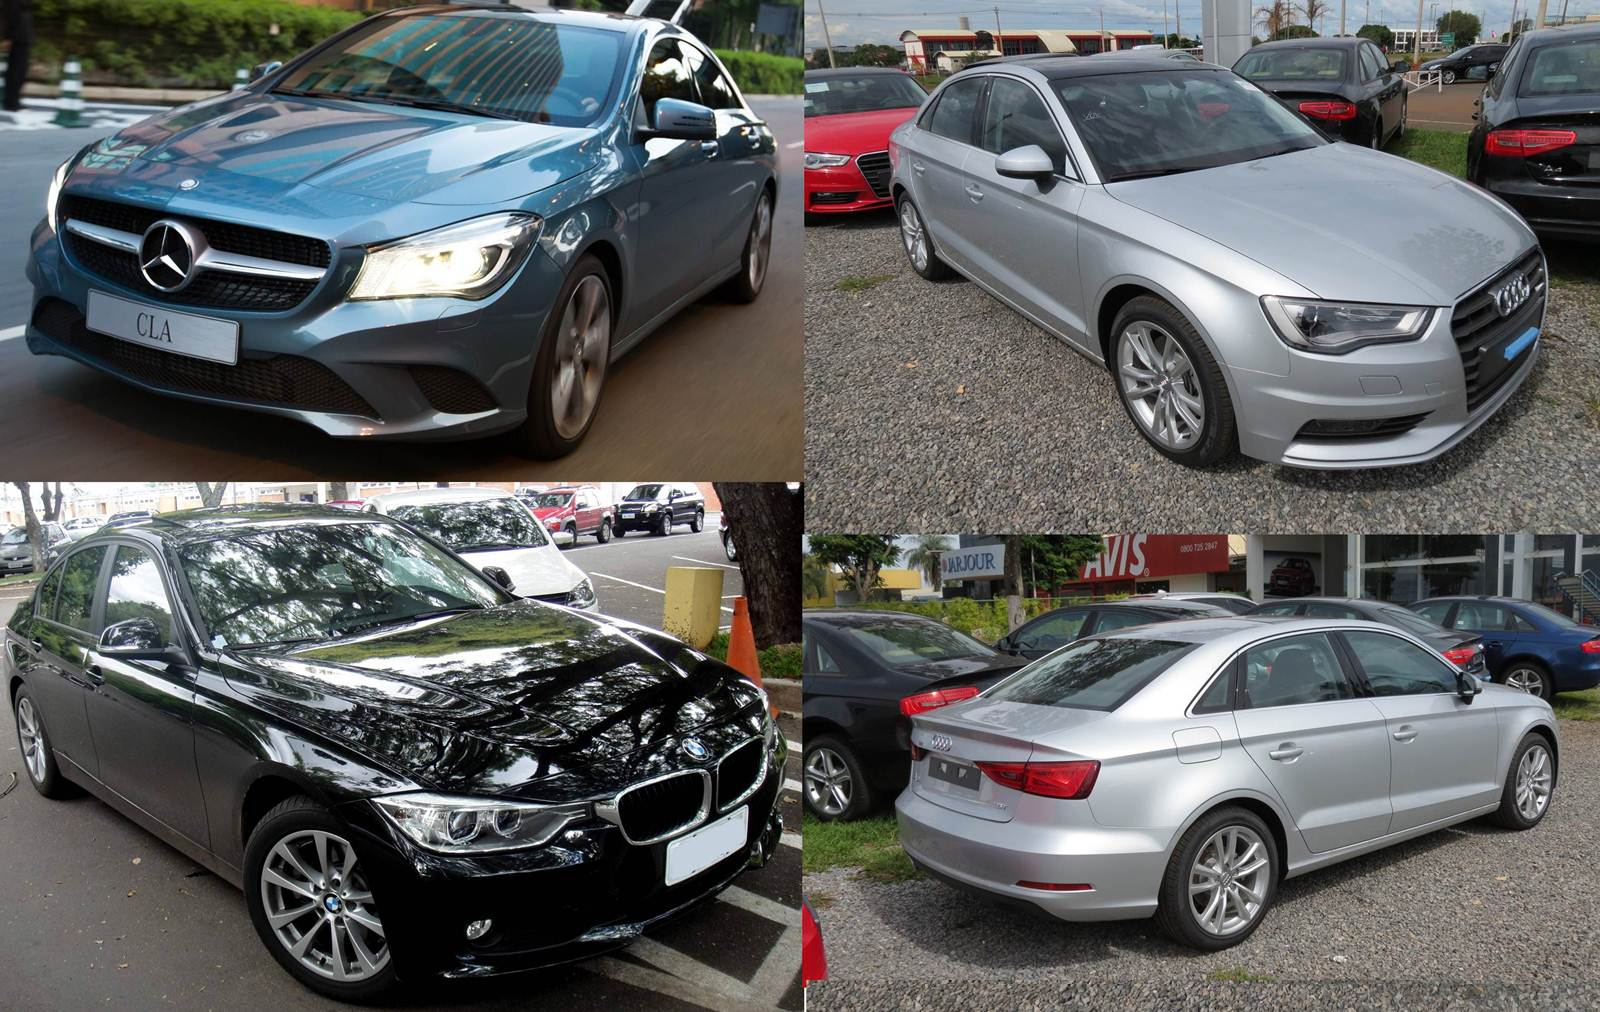 Audi A3 Sedan x Mercedes-Benz CLA x BMW 320i Active Flex